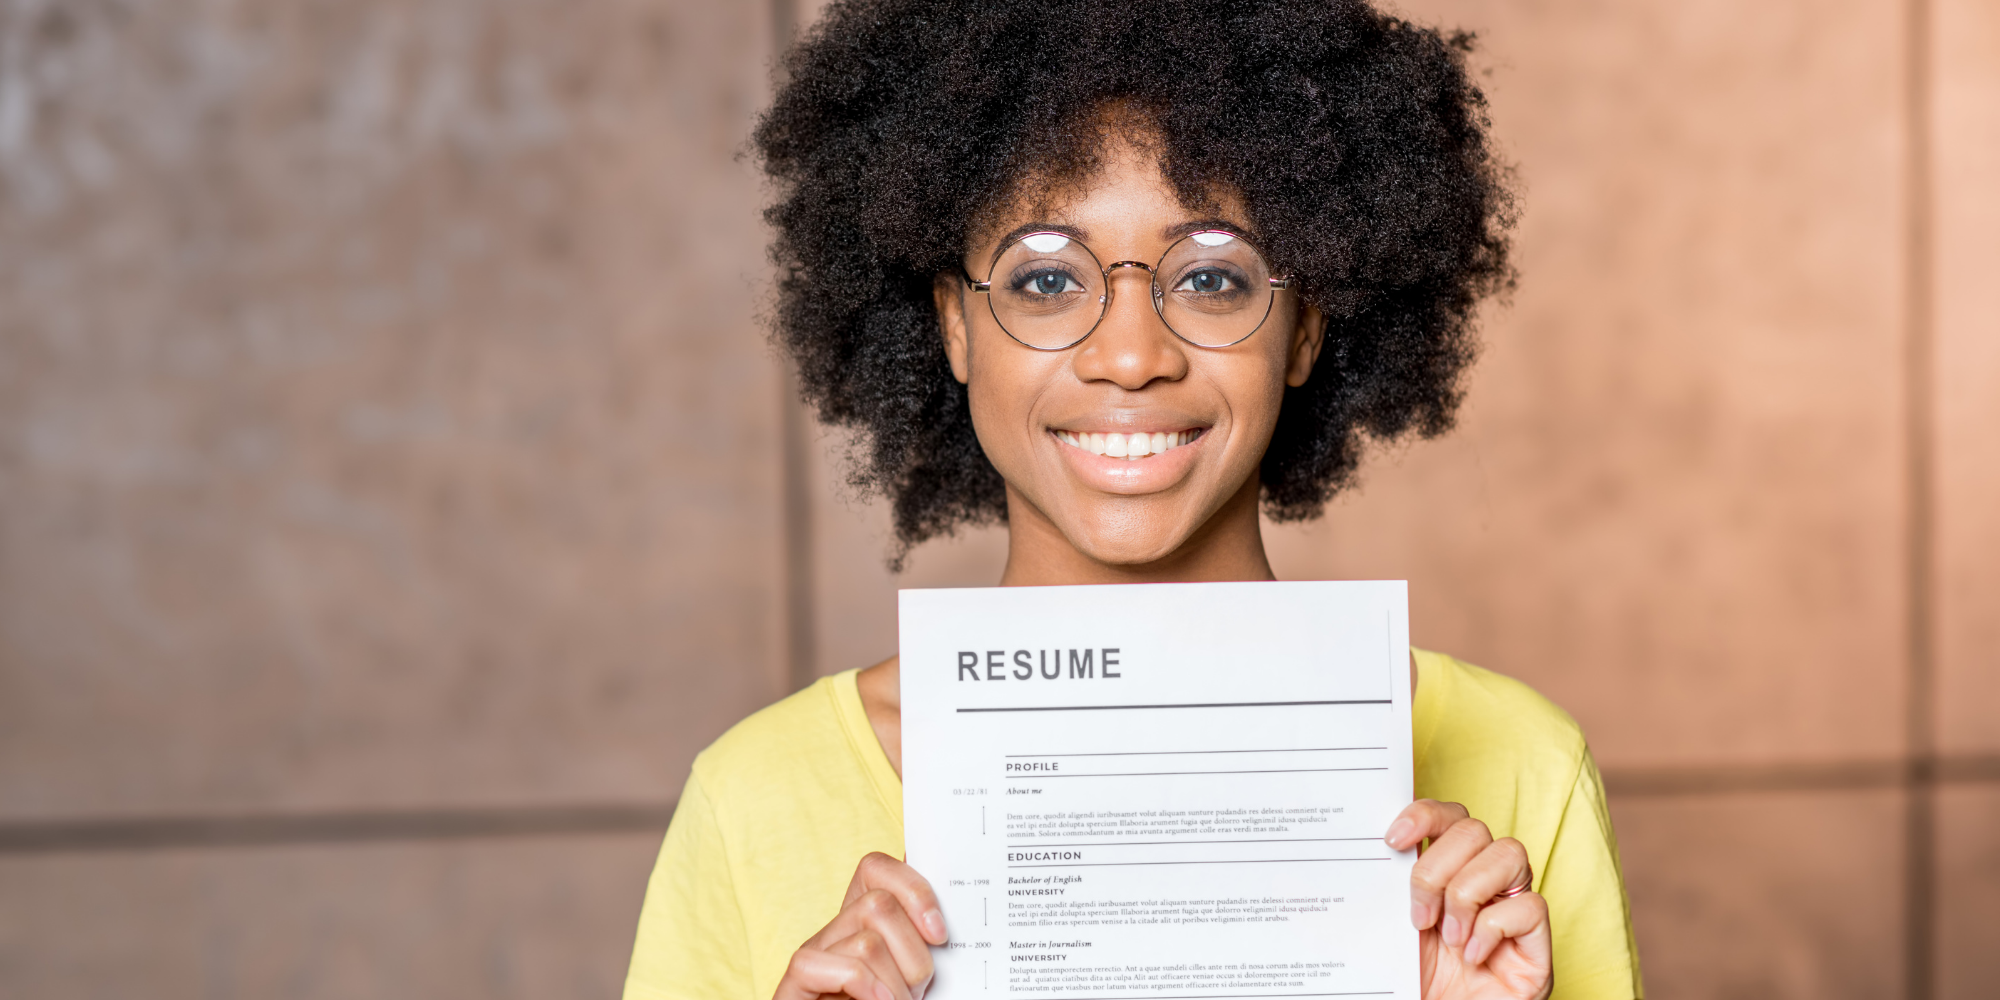 Build Your Resume to Run for Office IGNITE National